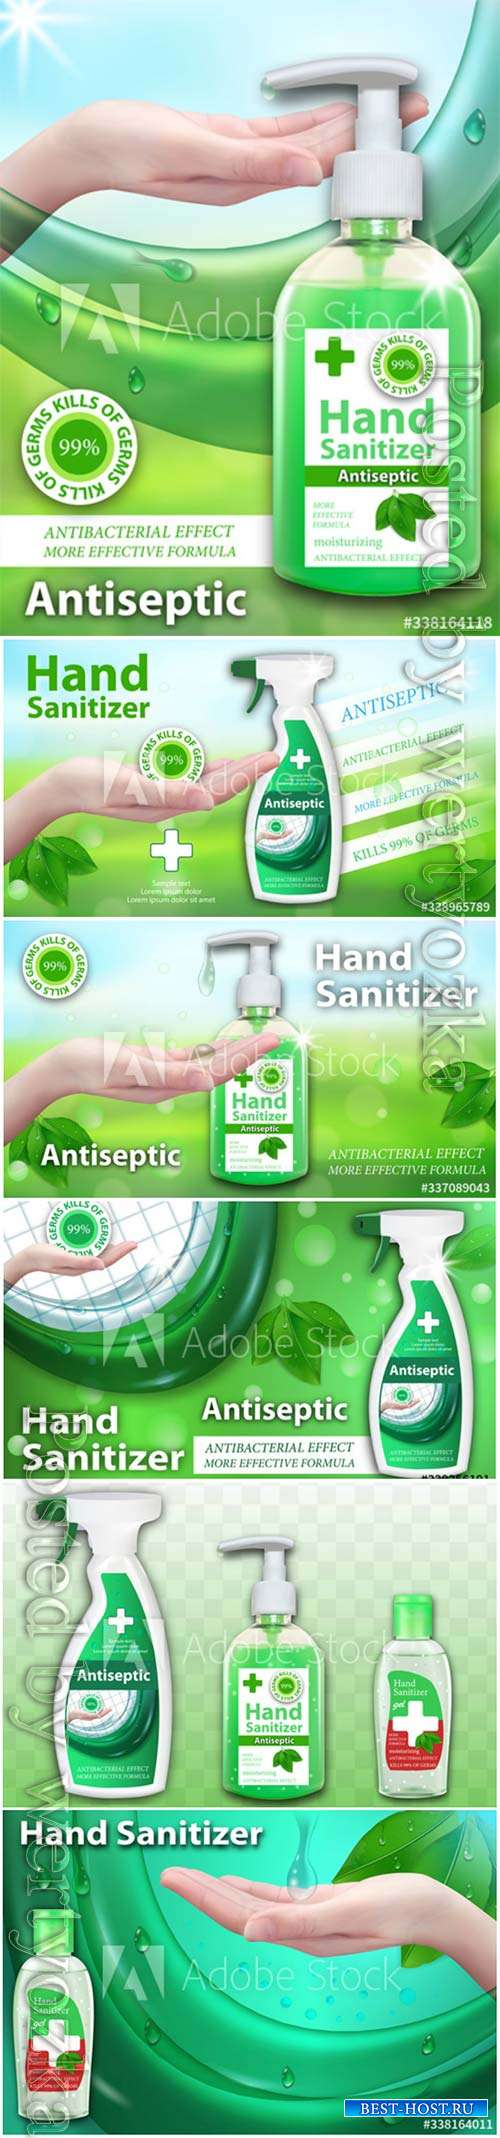 Antiseptic for hands in bottles vector design